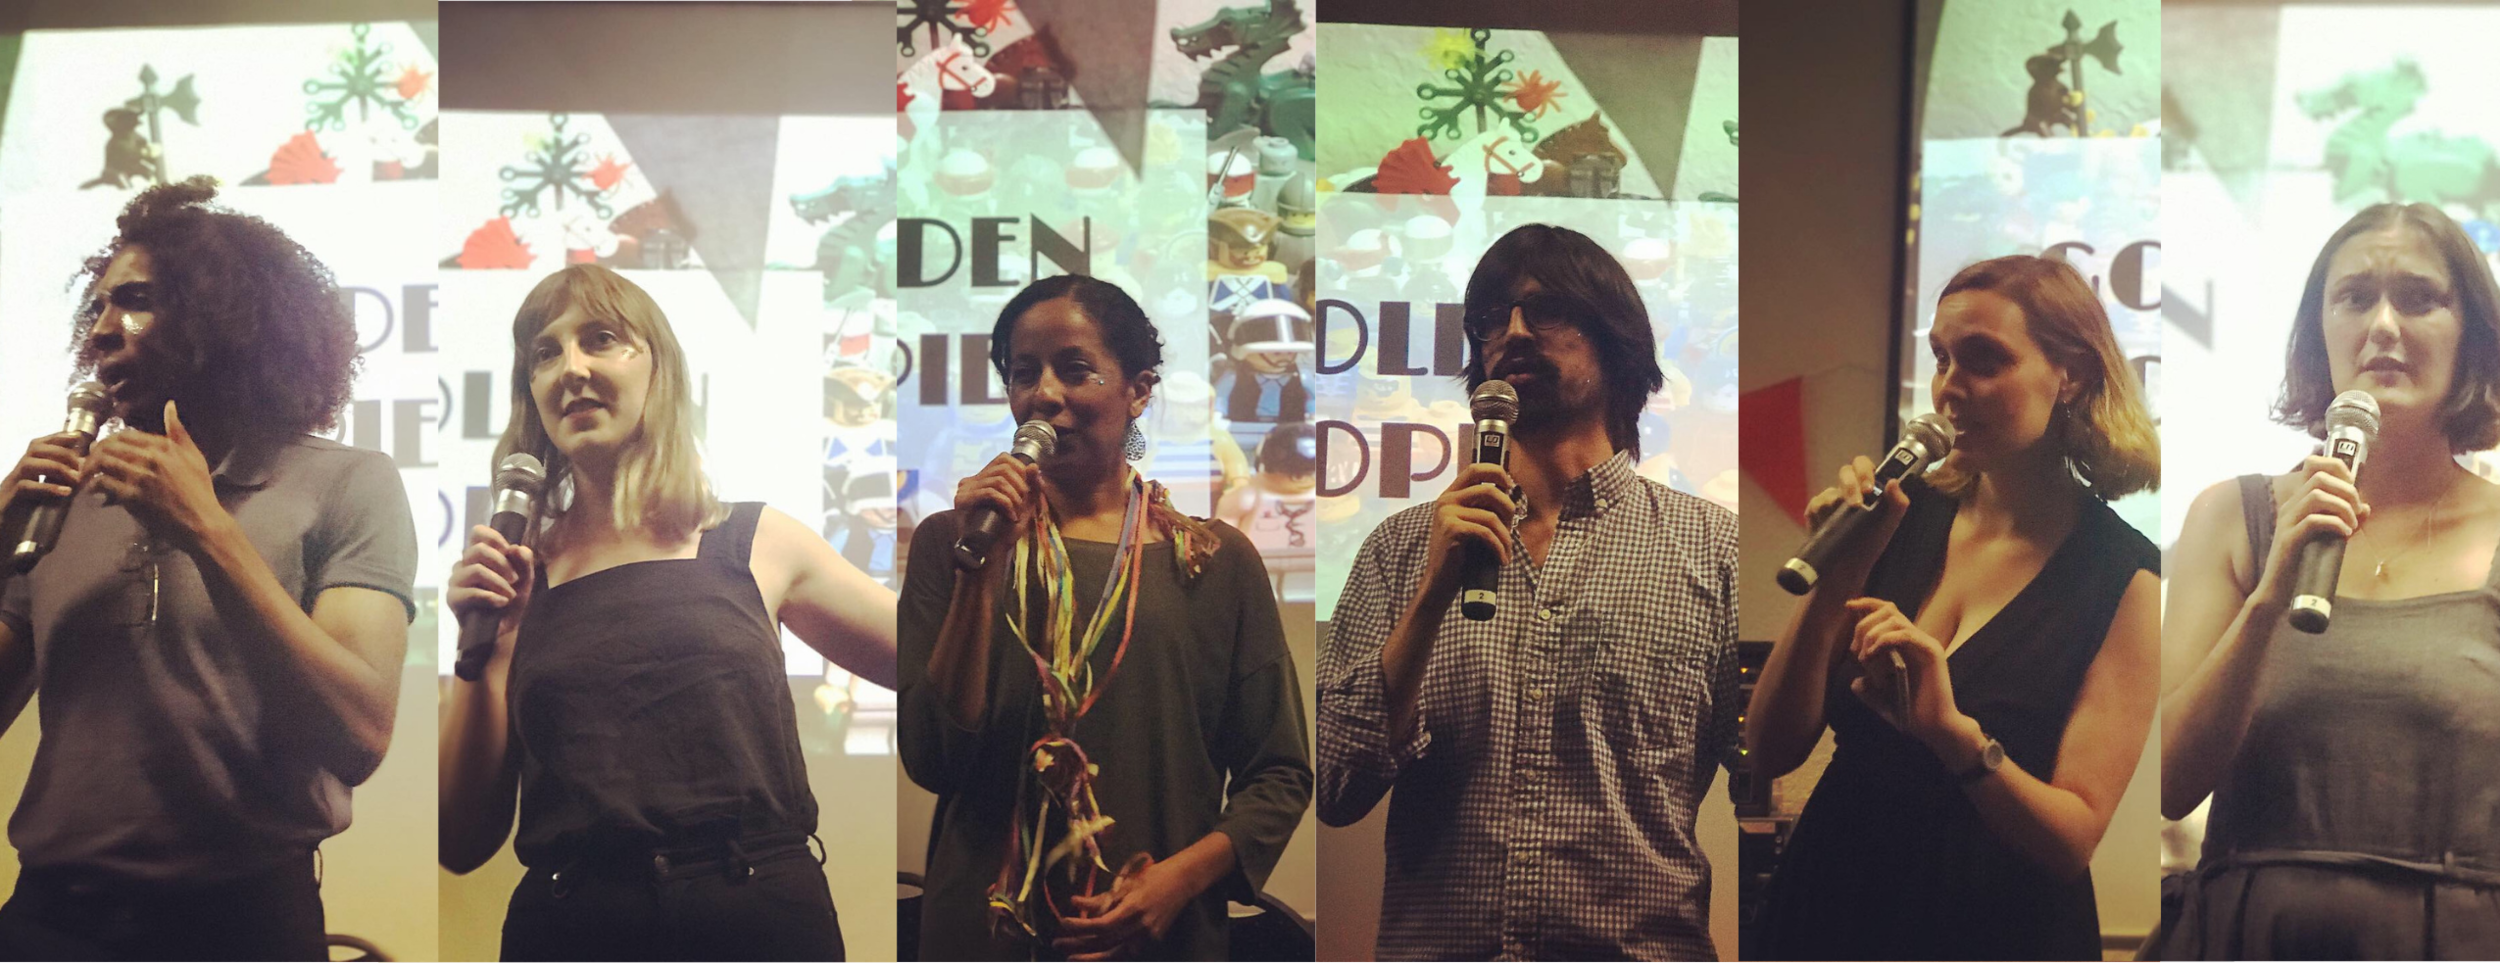 Representatives from Amandla.mobi (South Africa), GetUp (Australia), MoveOn (US), Nossas (Brasil), Campact (Germany) and ActionStation (New Zealand) pitch their campaigns for our annual awards night.